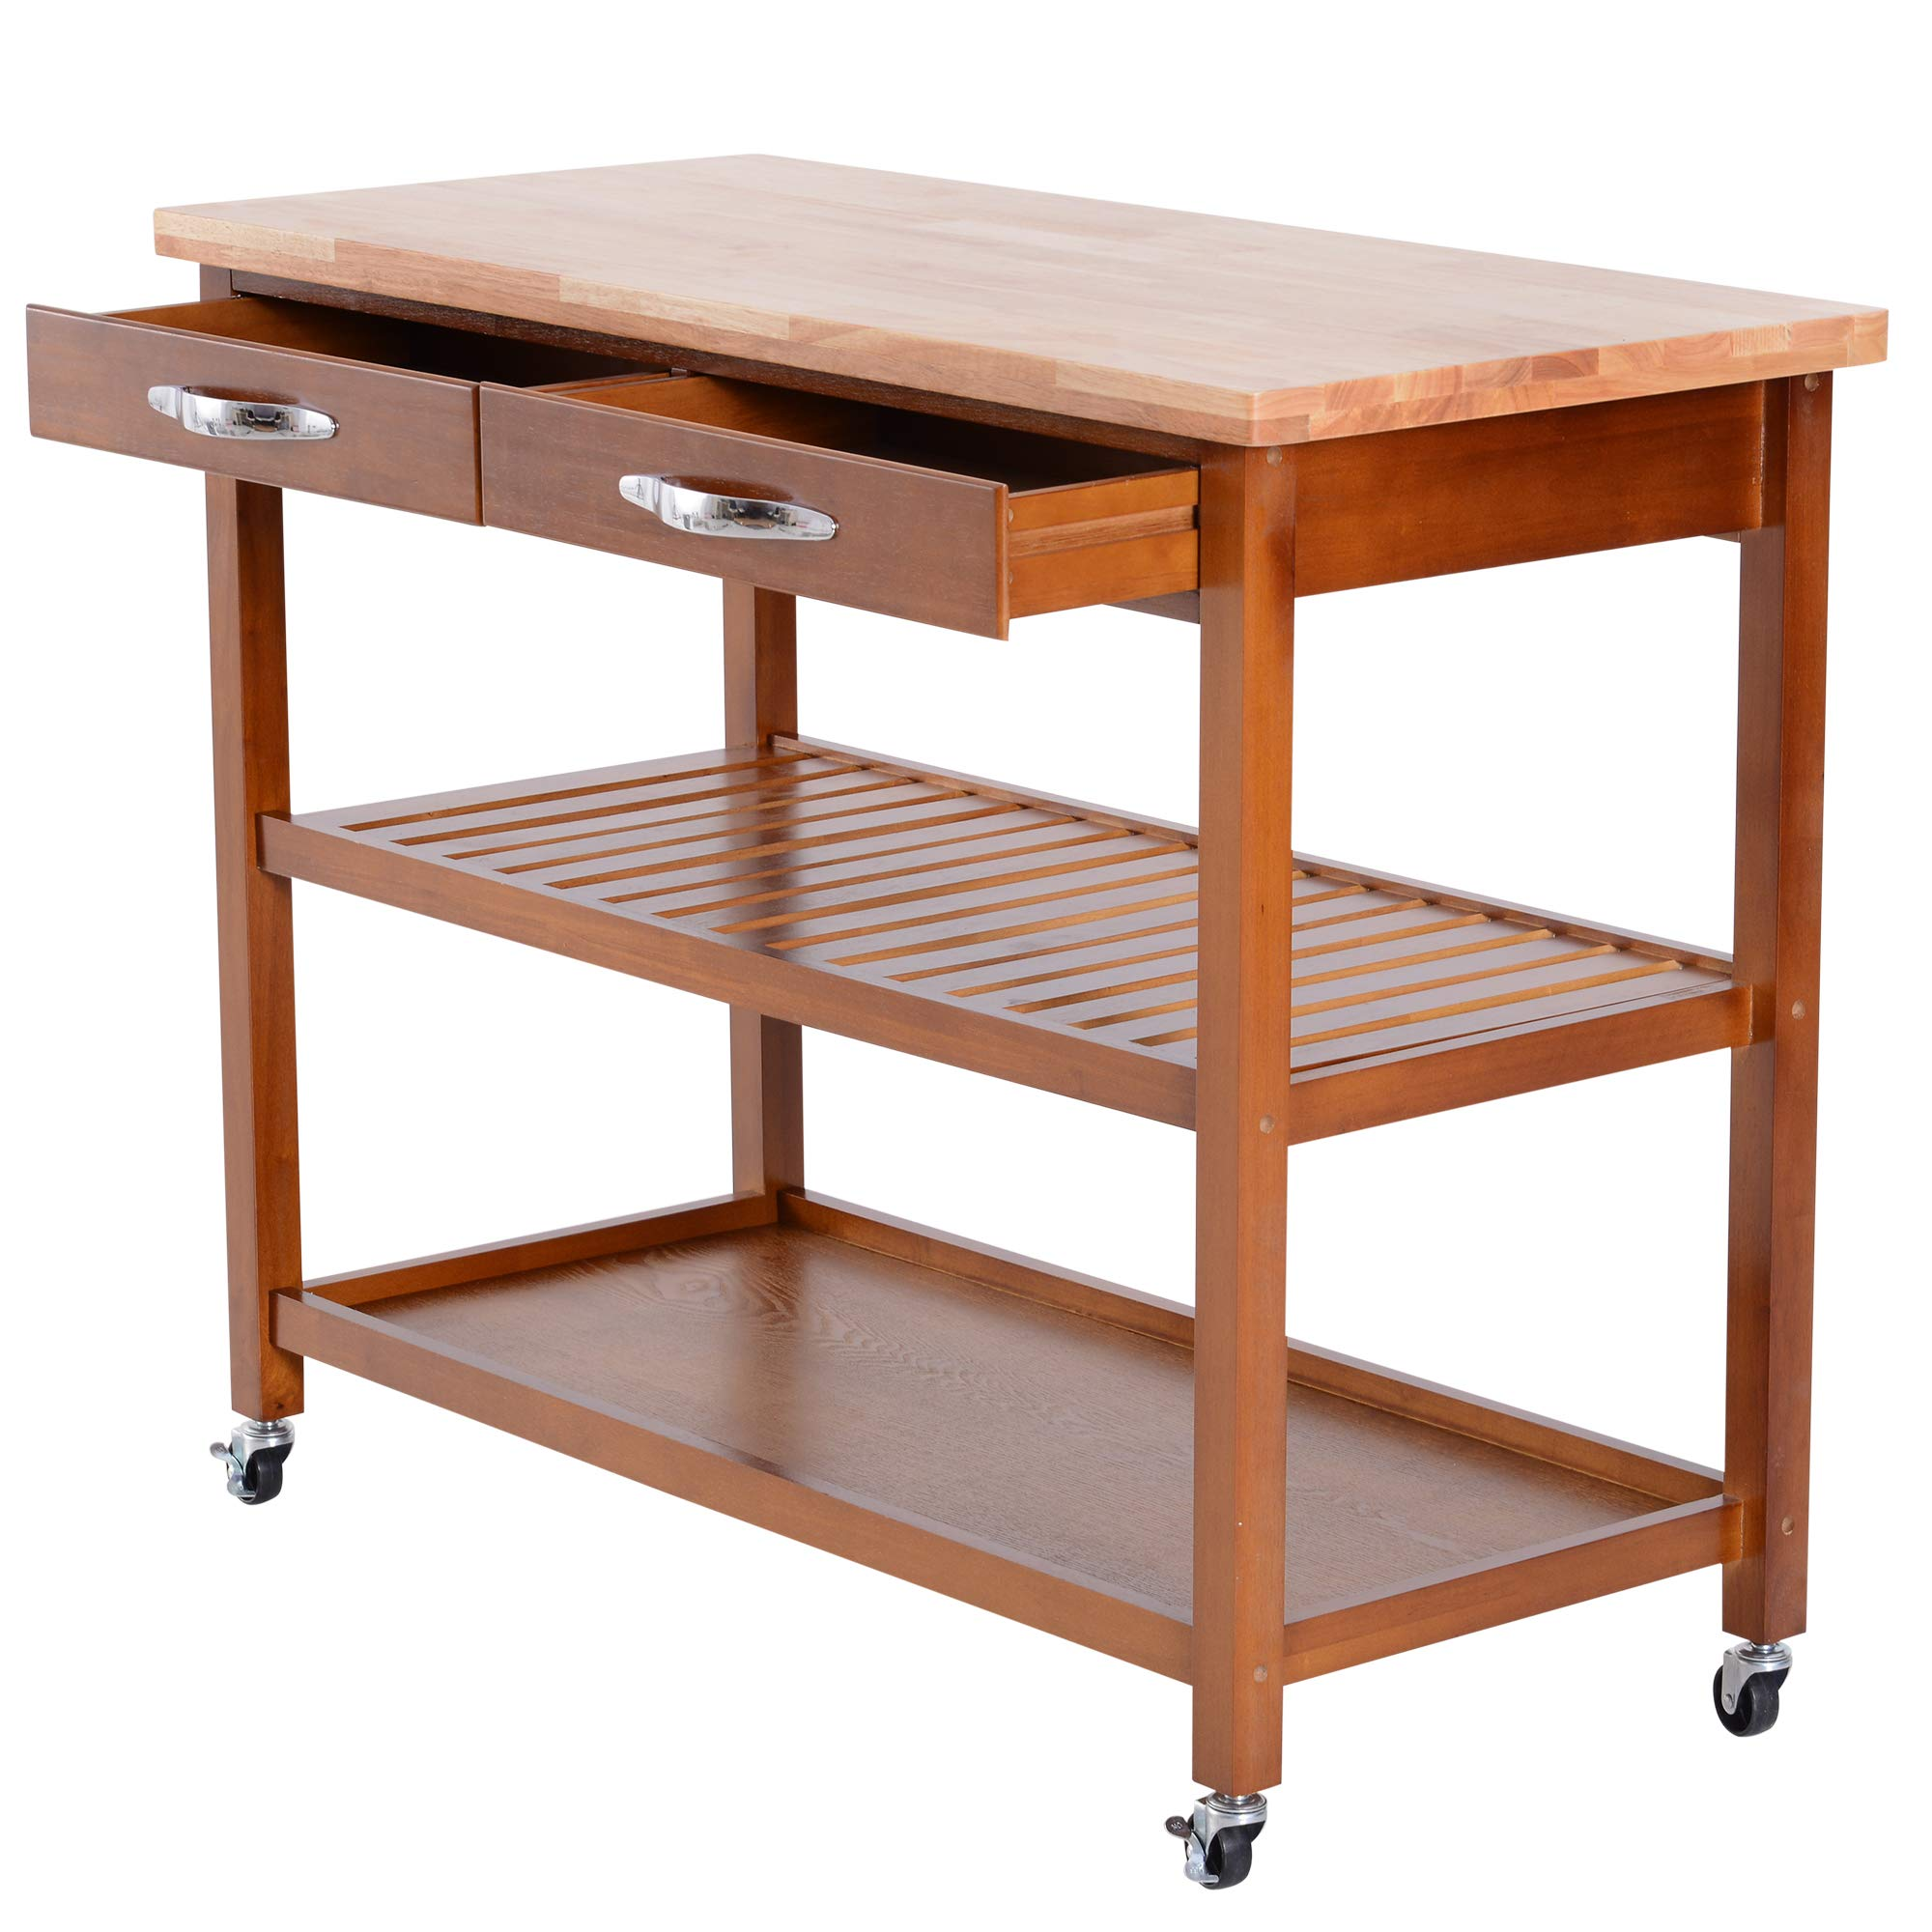 HOMCOM 44'' 3-Tier Rubberwood Kitchen Island Cart on Wheels - Brown by HOMCOM (Image #5)